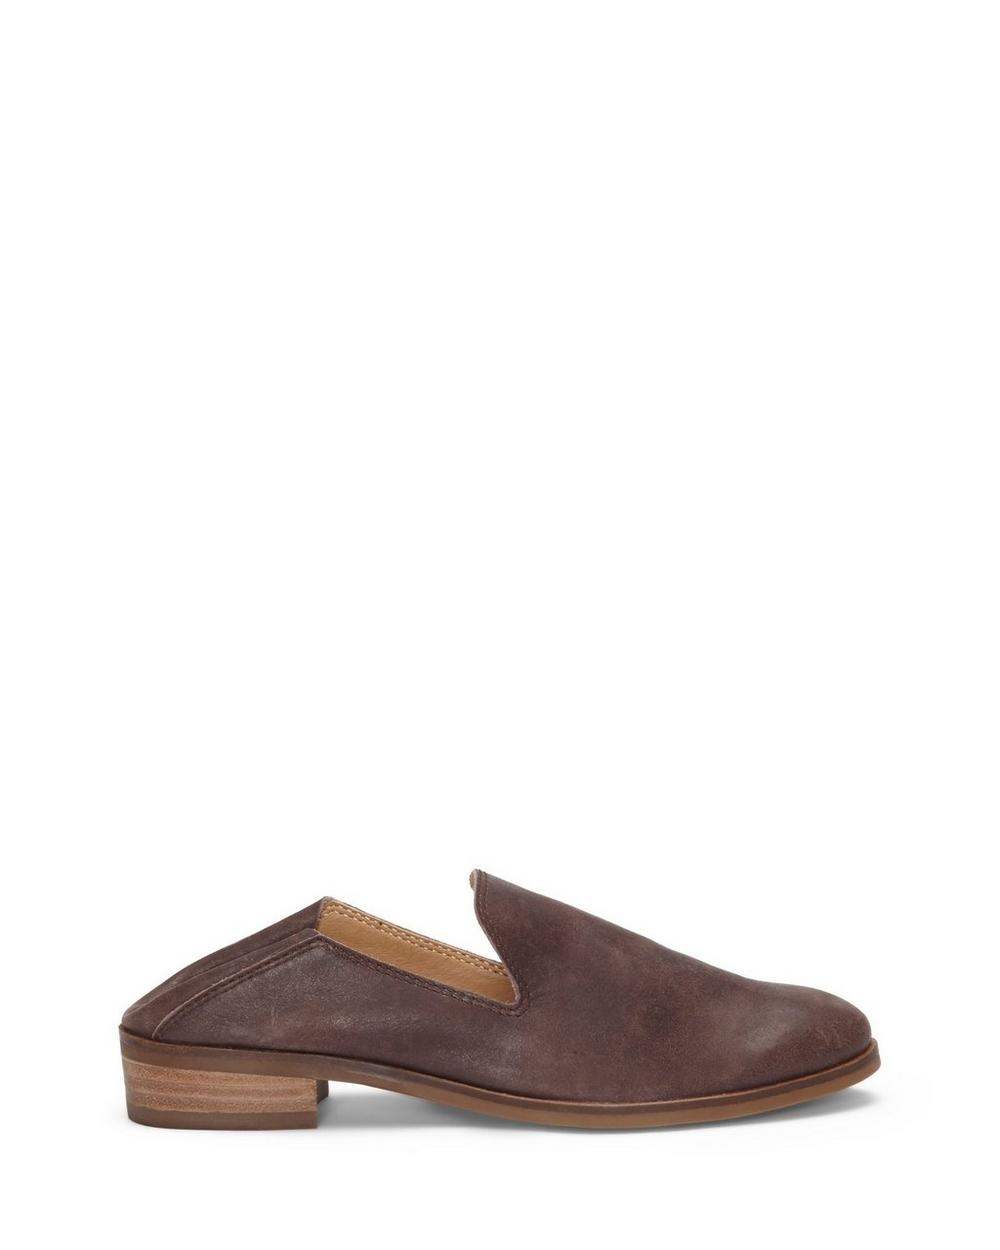 CAHILL LEATHER FLAT, image 2